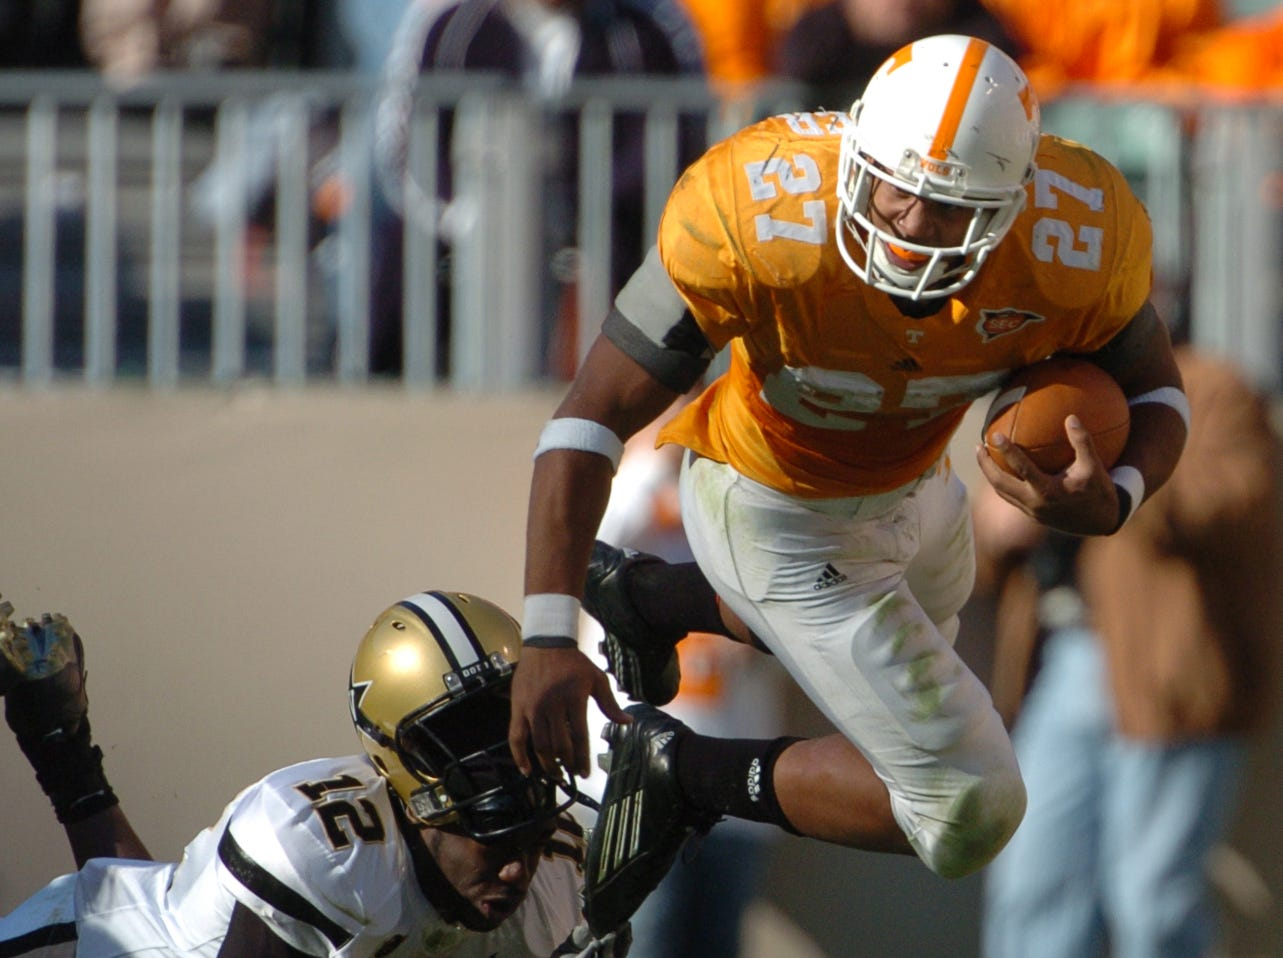 UT's Arian Foster knocks off the helmet of Vanderbilt's Kelechi Ohanaja (12) in the first half of the game at Neyland Stadium Saturday afternoon. Foster finished the game with 40 carries for 223 yards and 2 touchdowns on 11/19/2005.